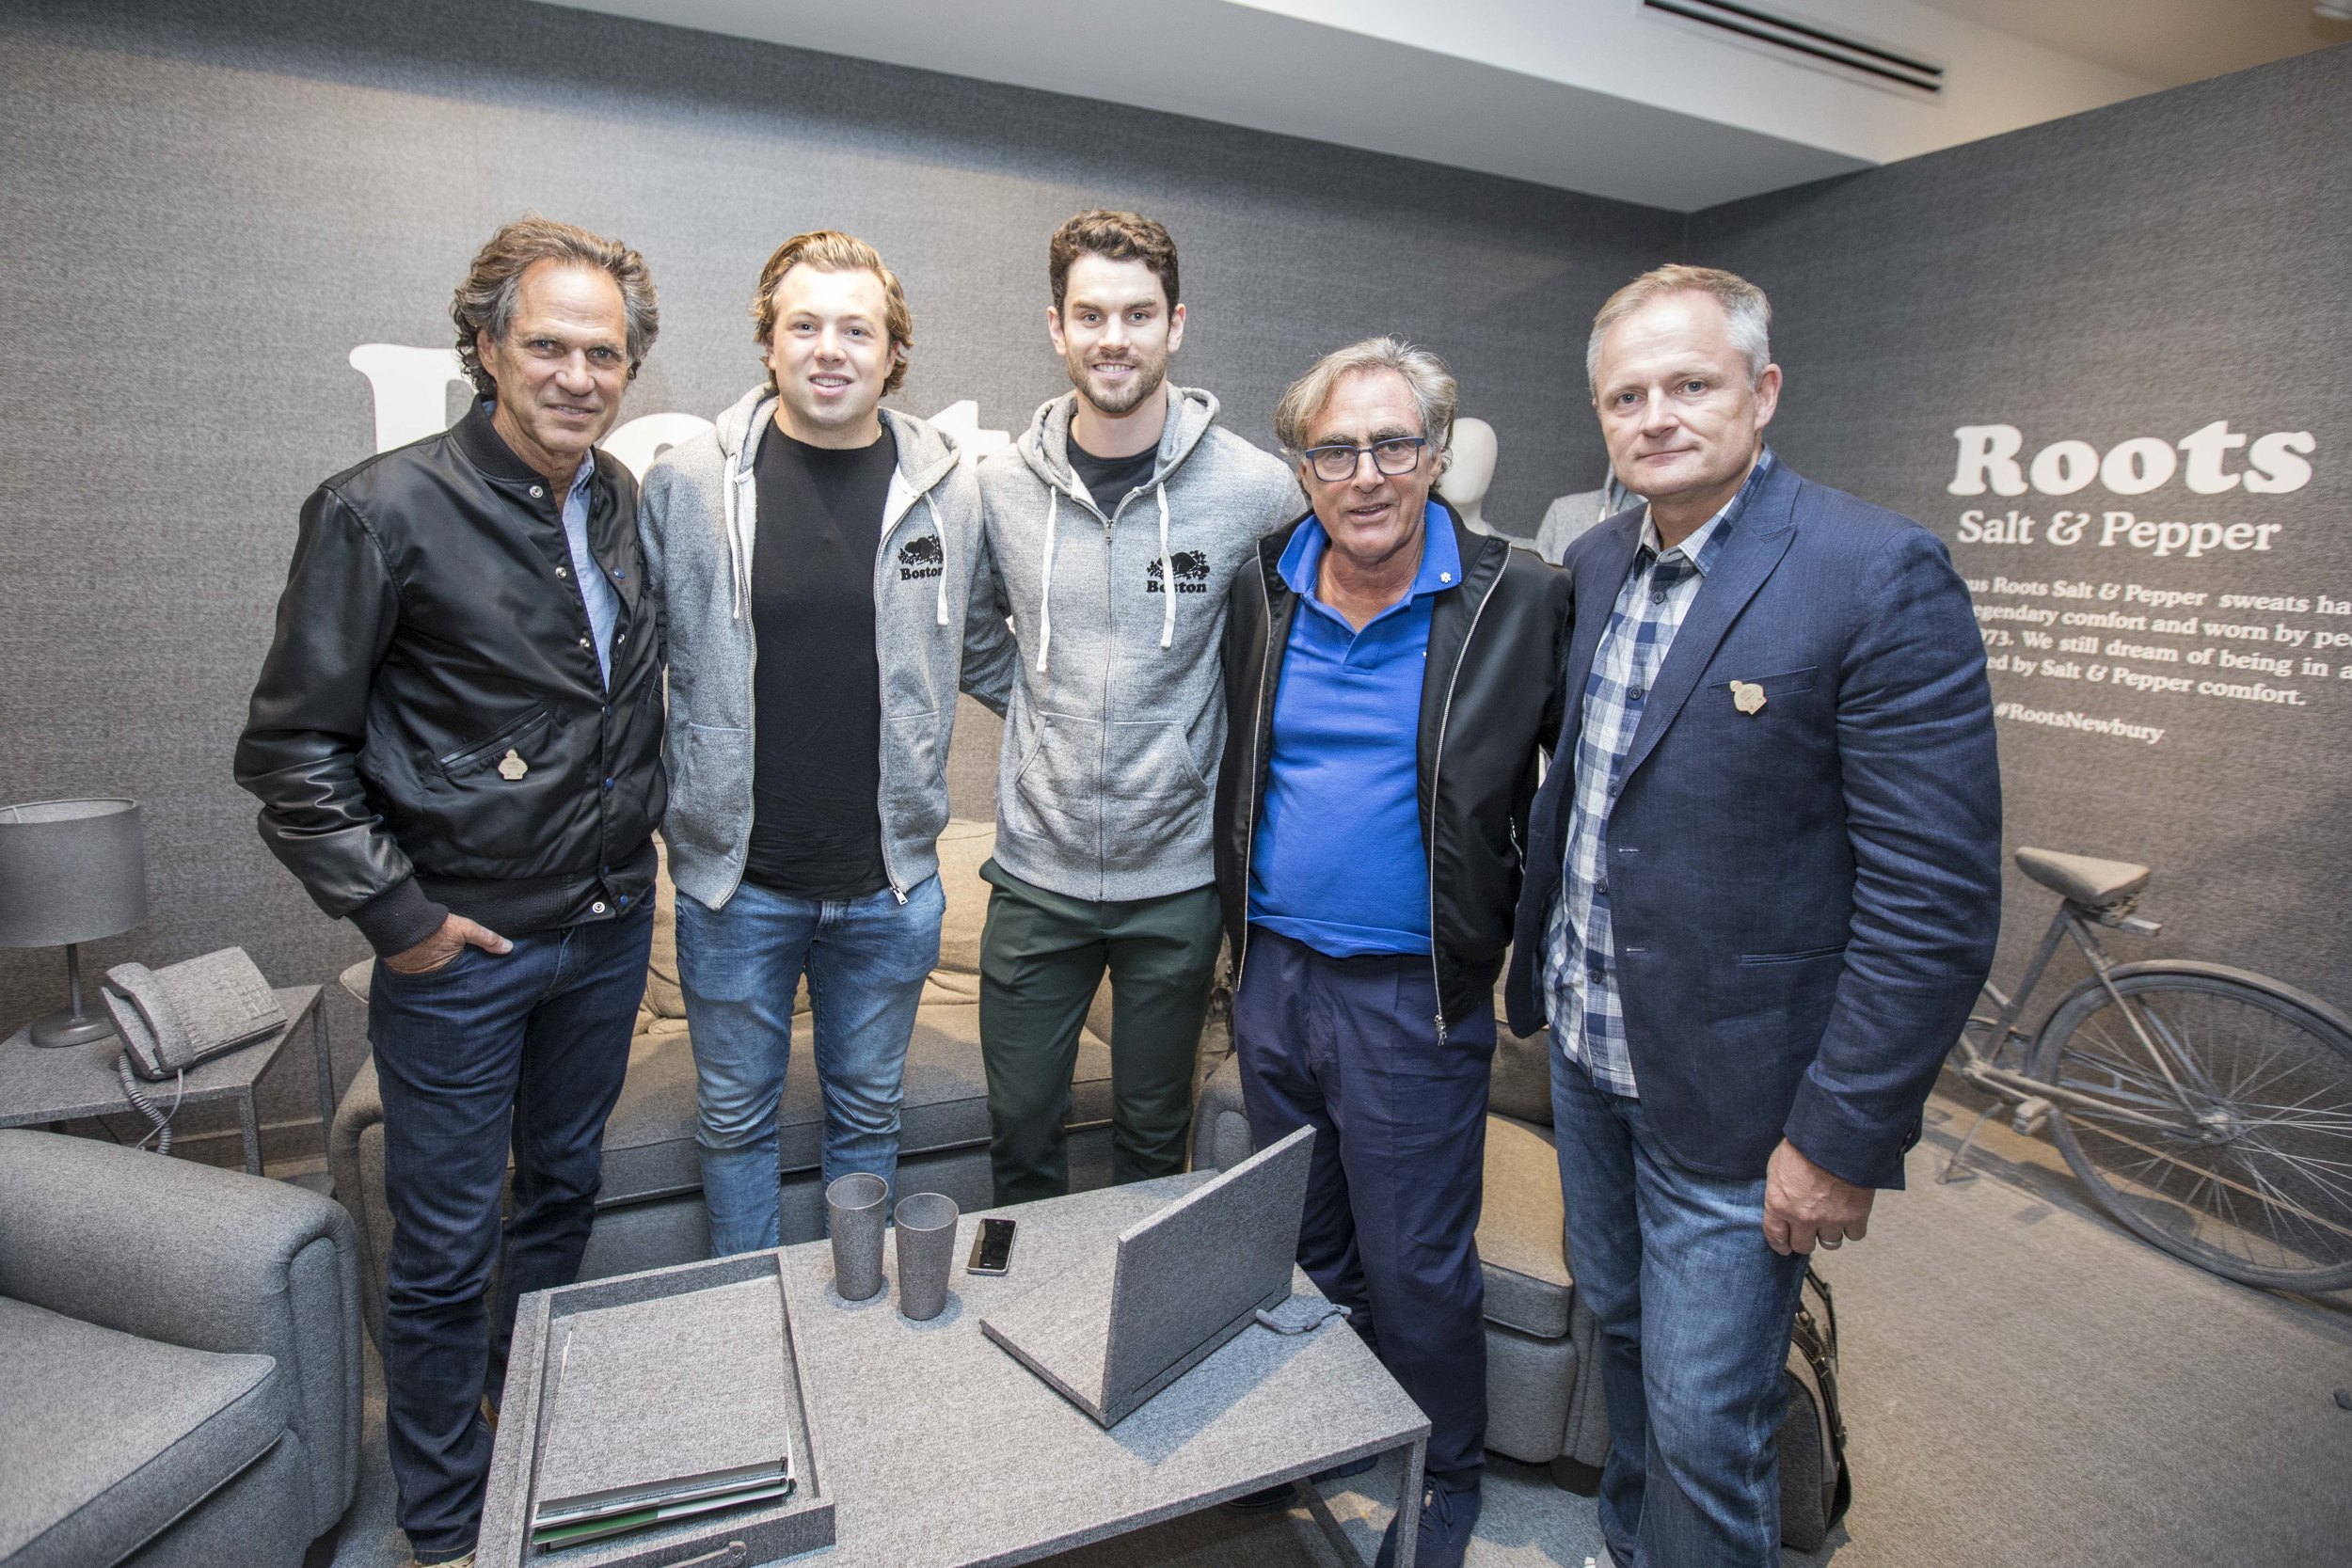 Don Green, Charlie McAvoy, Adam McQuaid, Michael Budman, and Roots CEO, Jim Gabel.